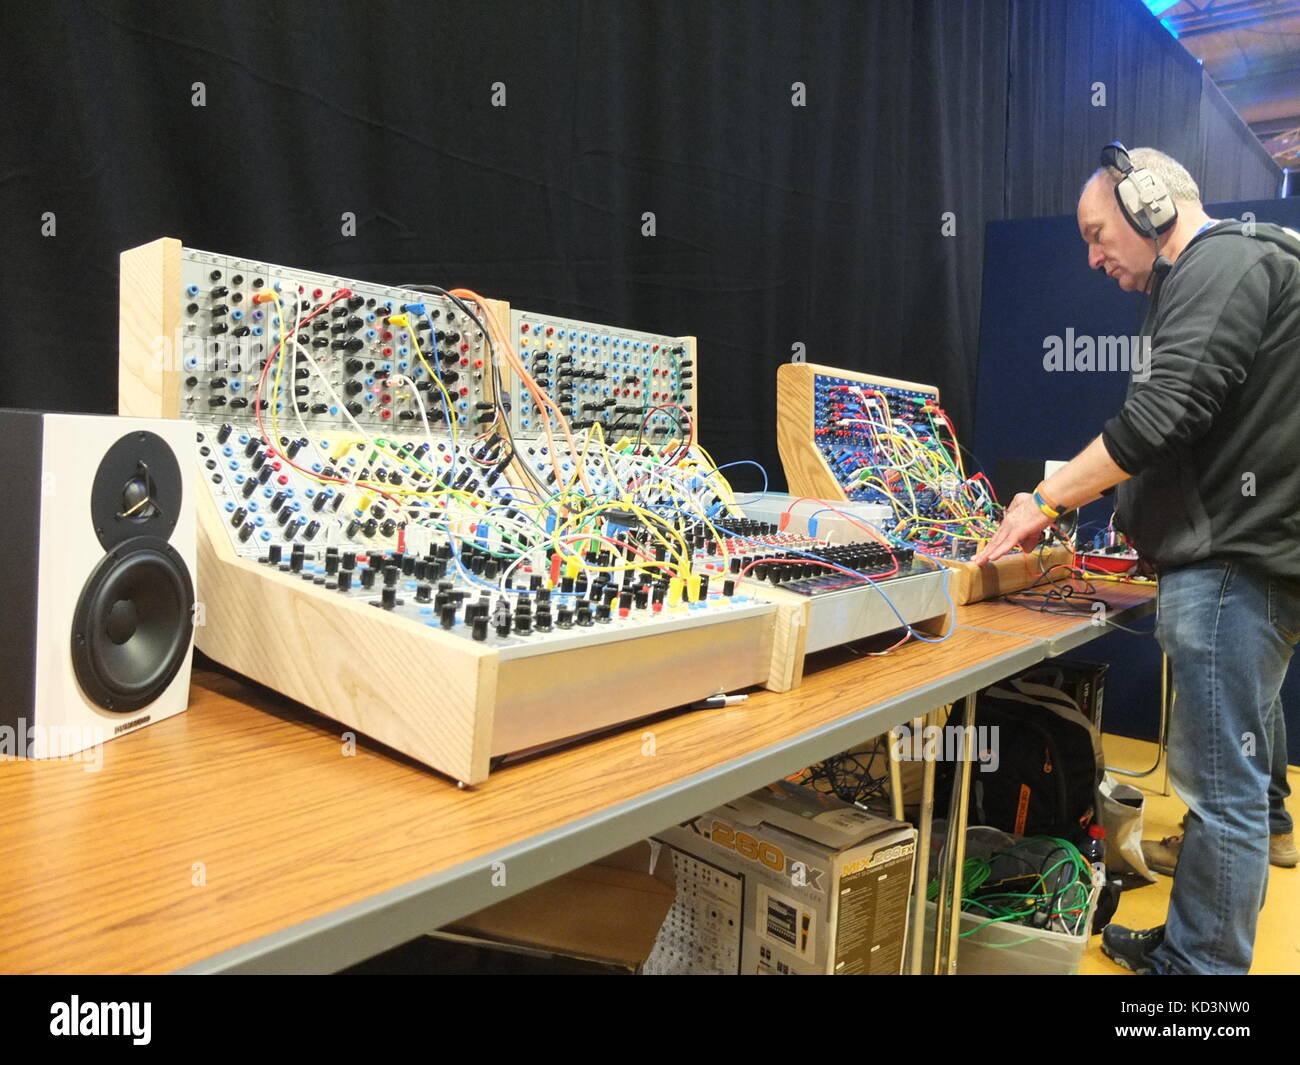 Modular analogue synthesizers on display at Synthfest UK, The Octagon Centre, University of Sheffield (part of Sensoria Stock Photo